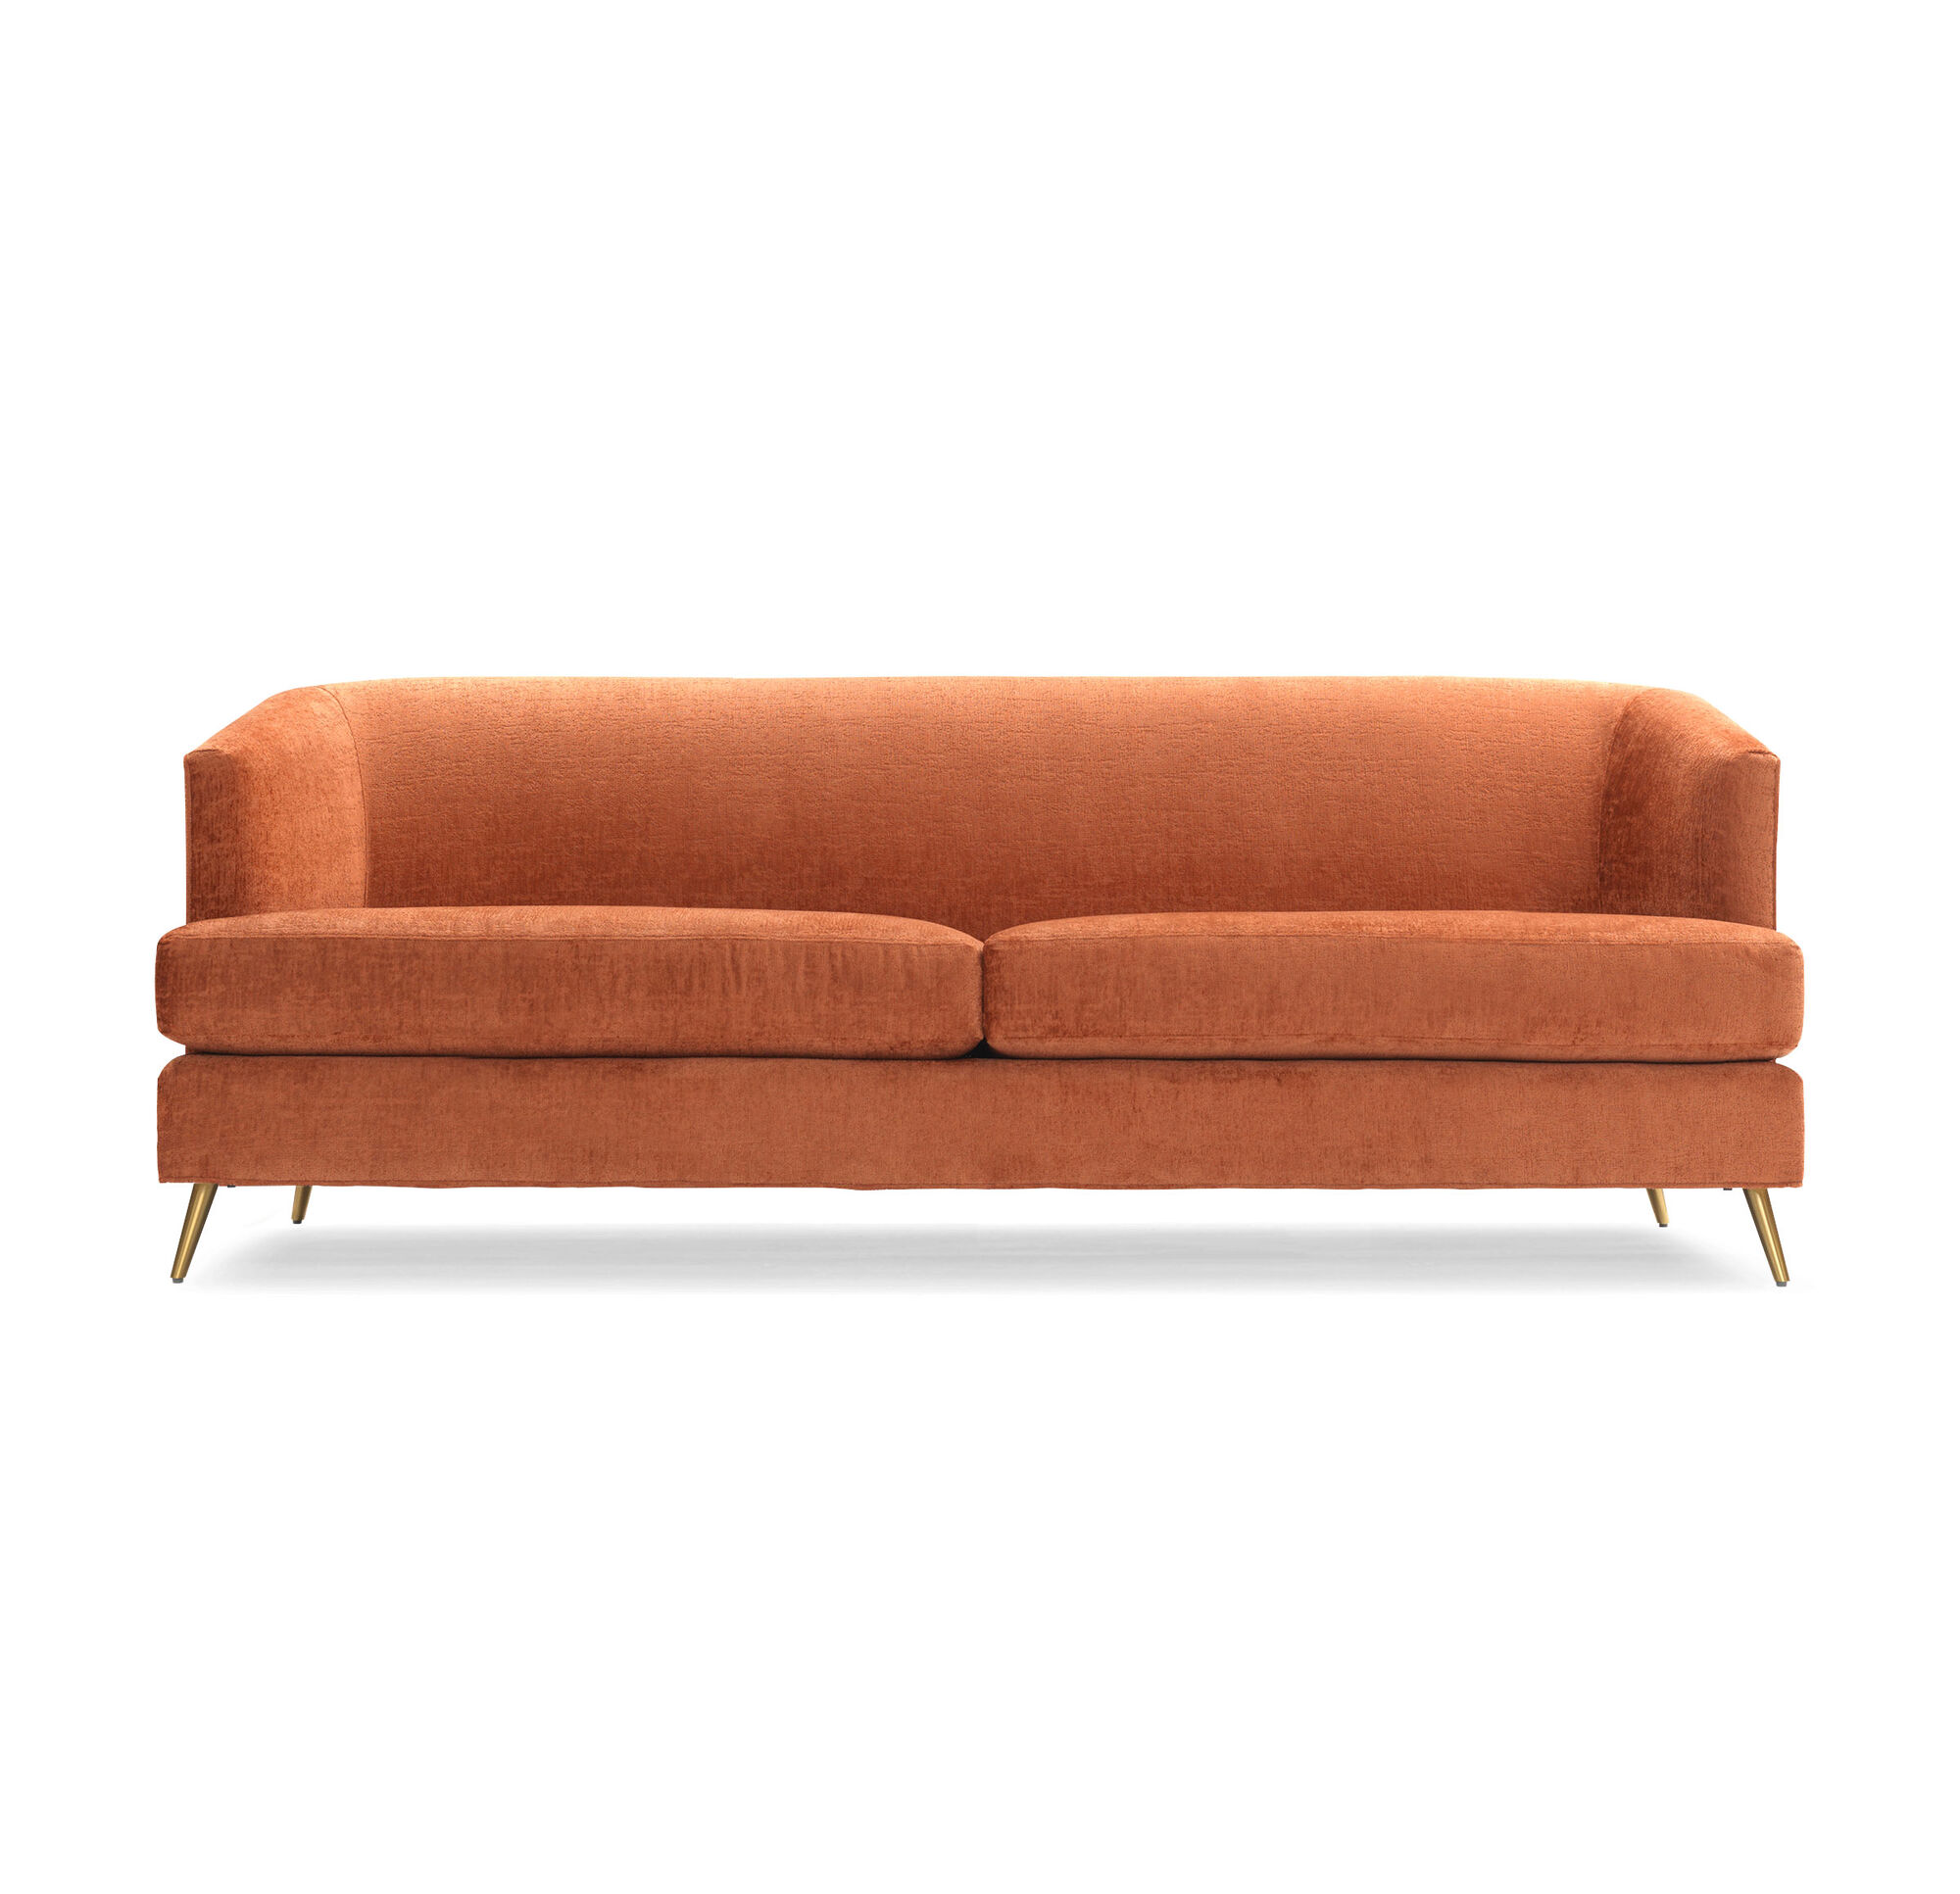 Marvelous Coco Sofa Unemploymentrelief Wooden Chair Designs For Living Room Unemploymentrelieforg